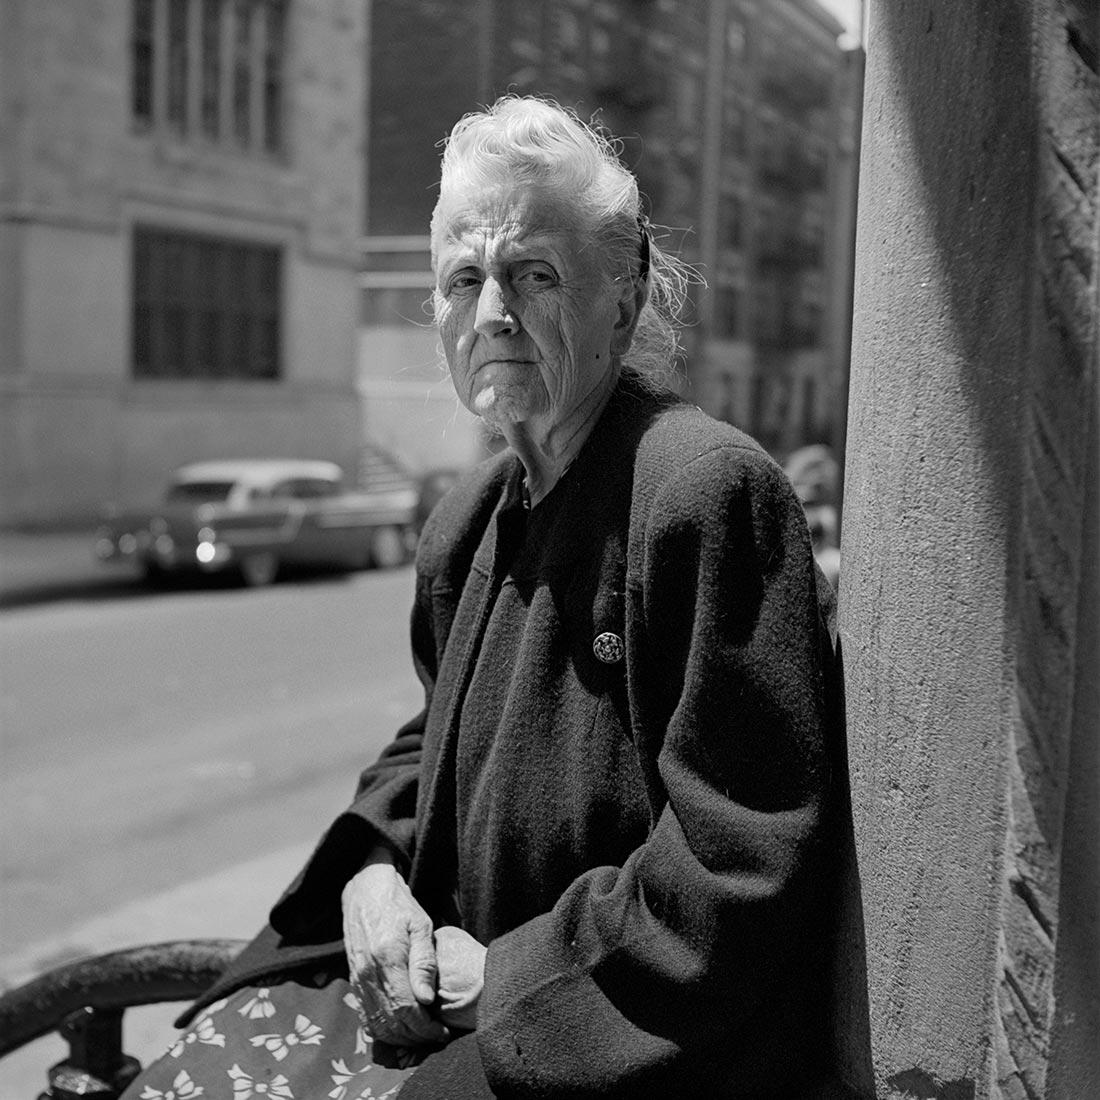 8 Clues to Better Street Photography in the Works of Vivian Maier